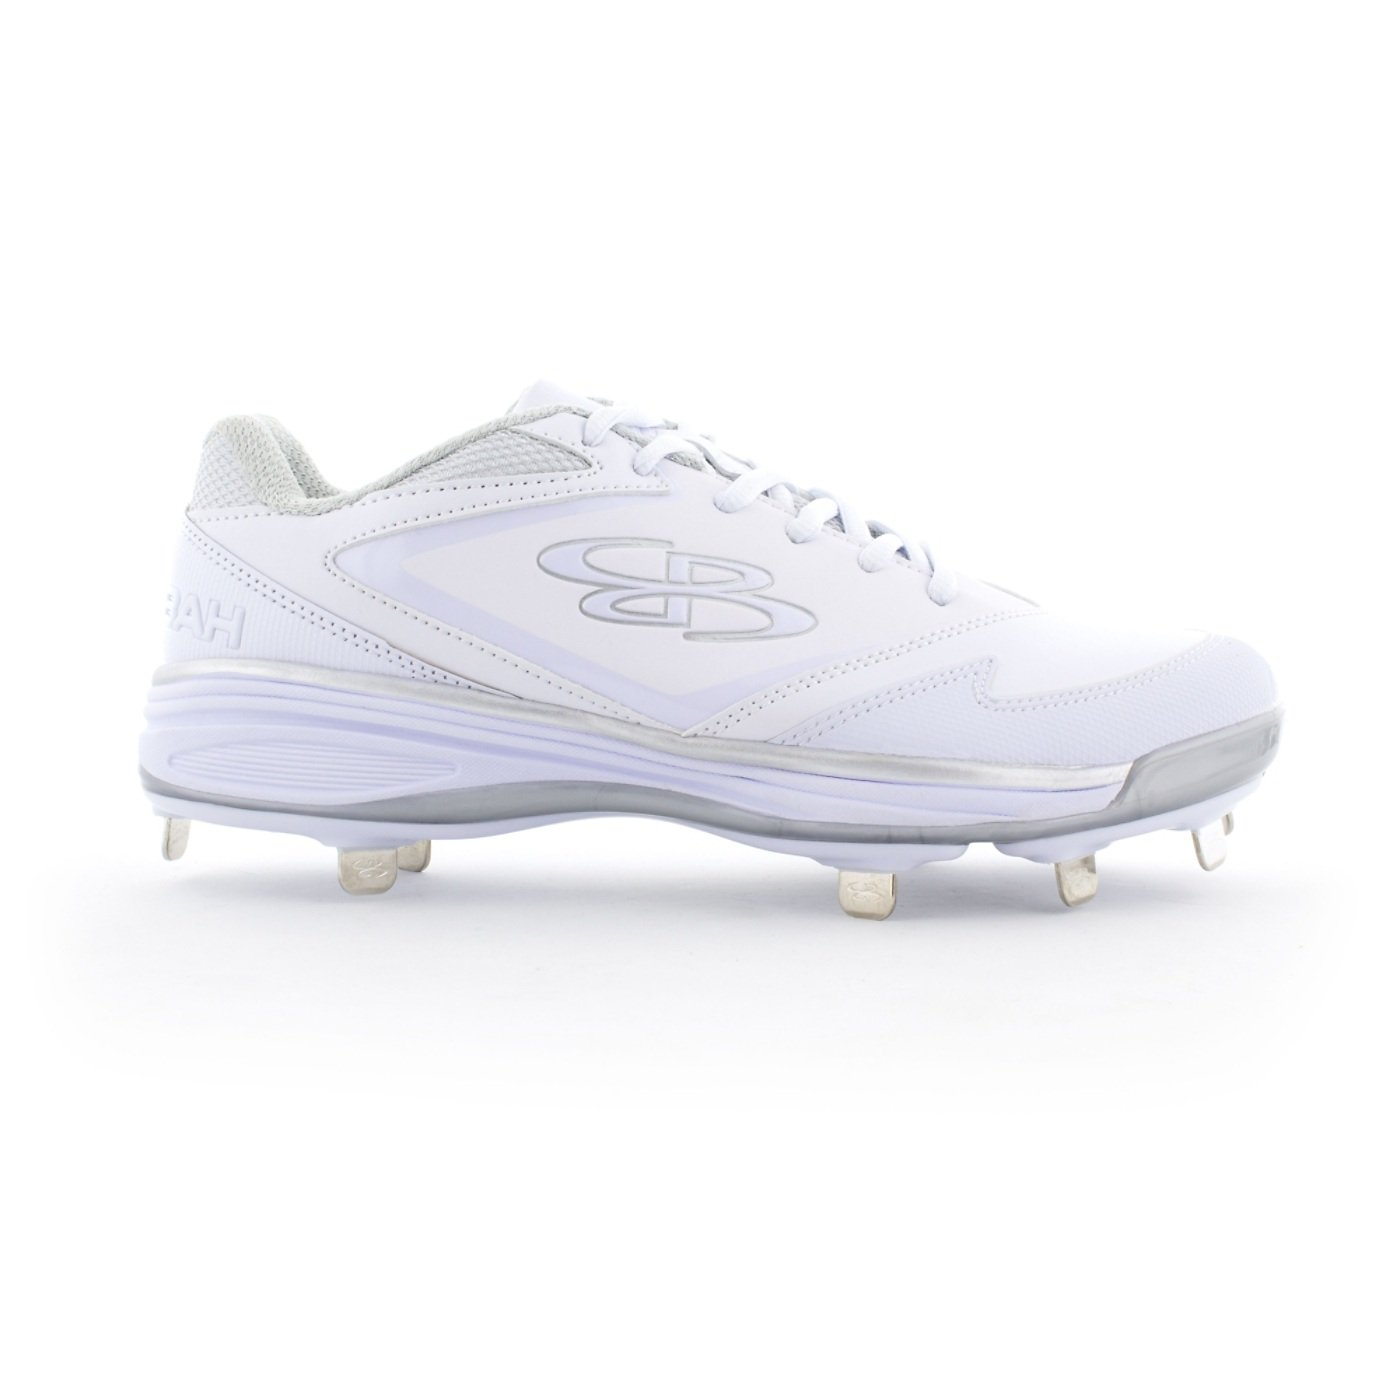 0d16524a9 ... Boombah Womens A-Game Metal Cleats - 6 Color Options - Multiple Sizes  ...